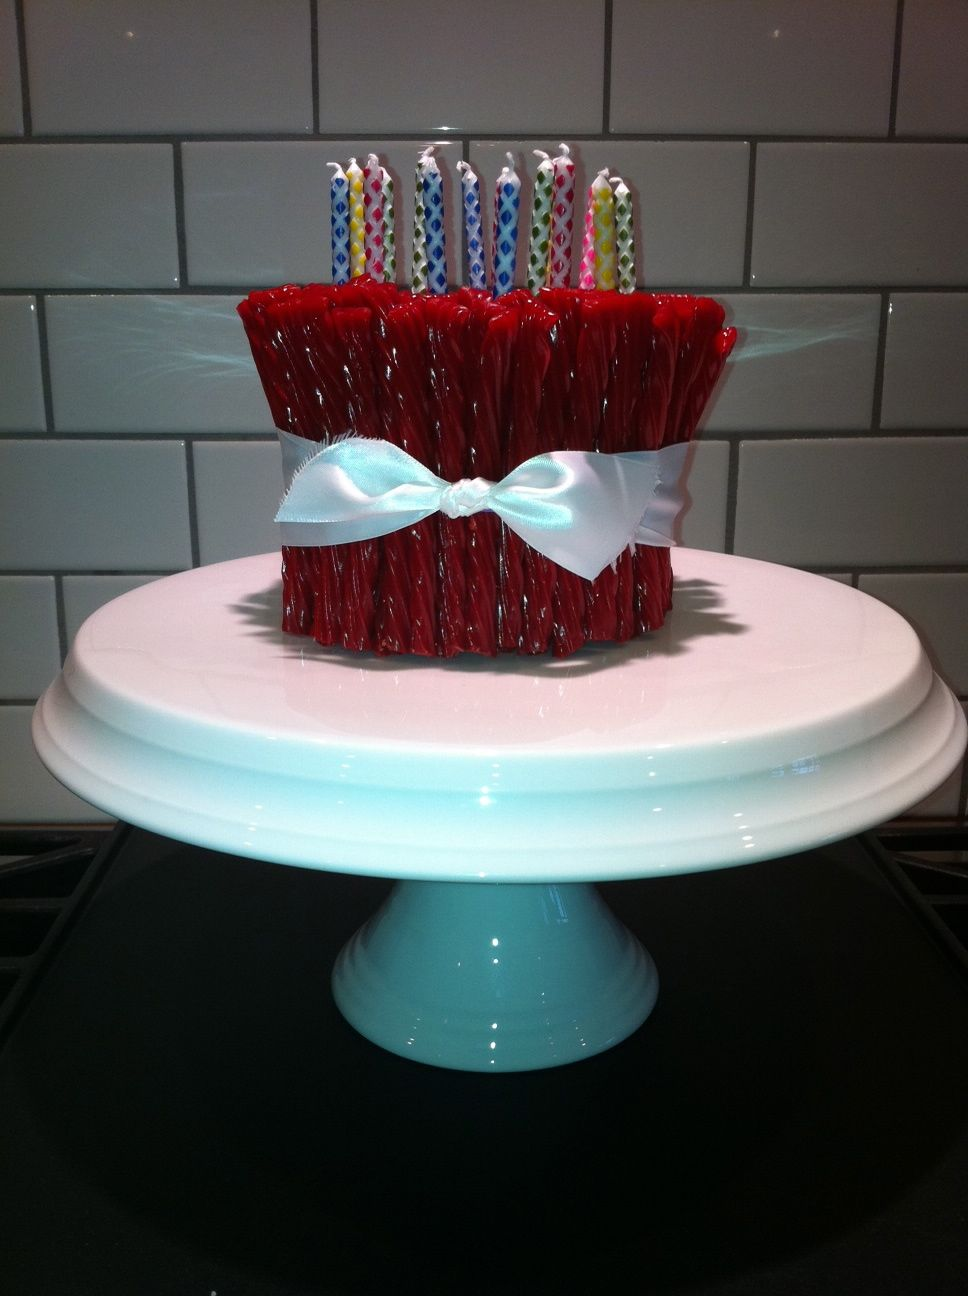 Twizzler Cake Kailyn Murphy You Better Be Makin Me This